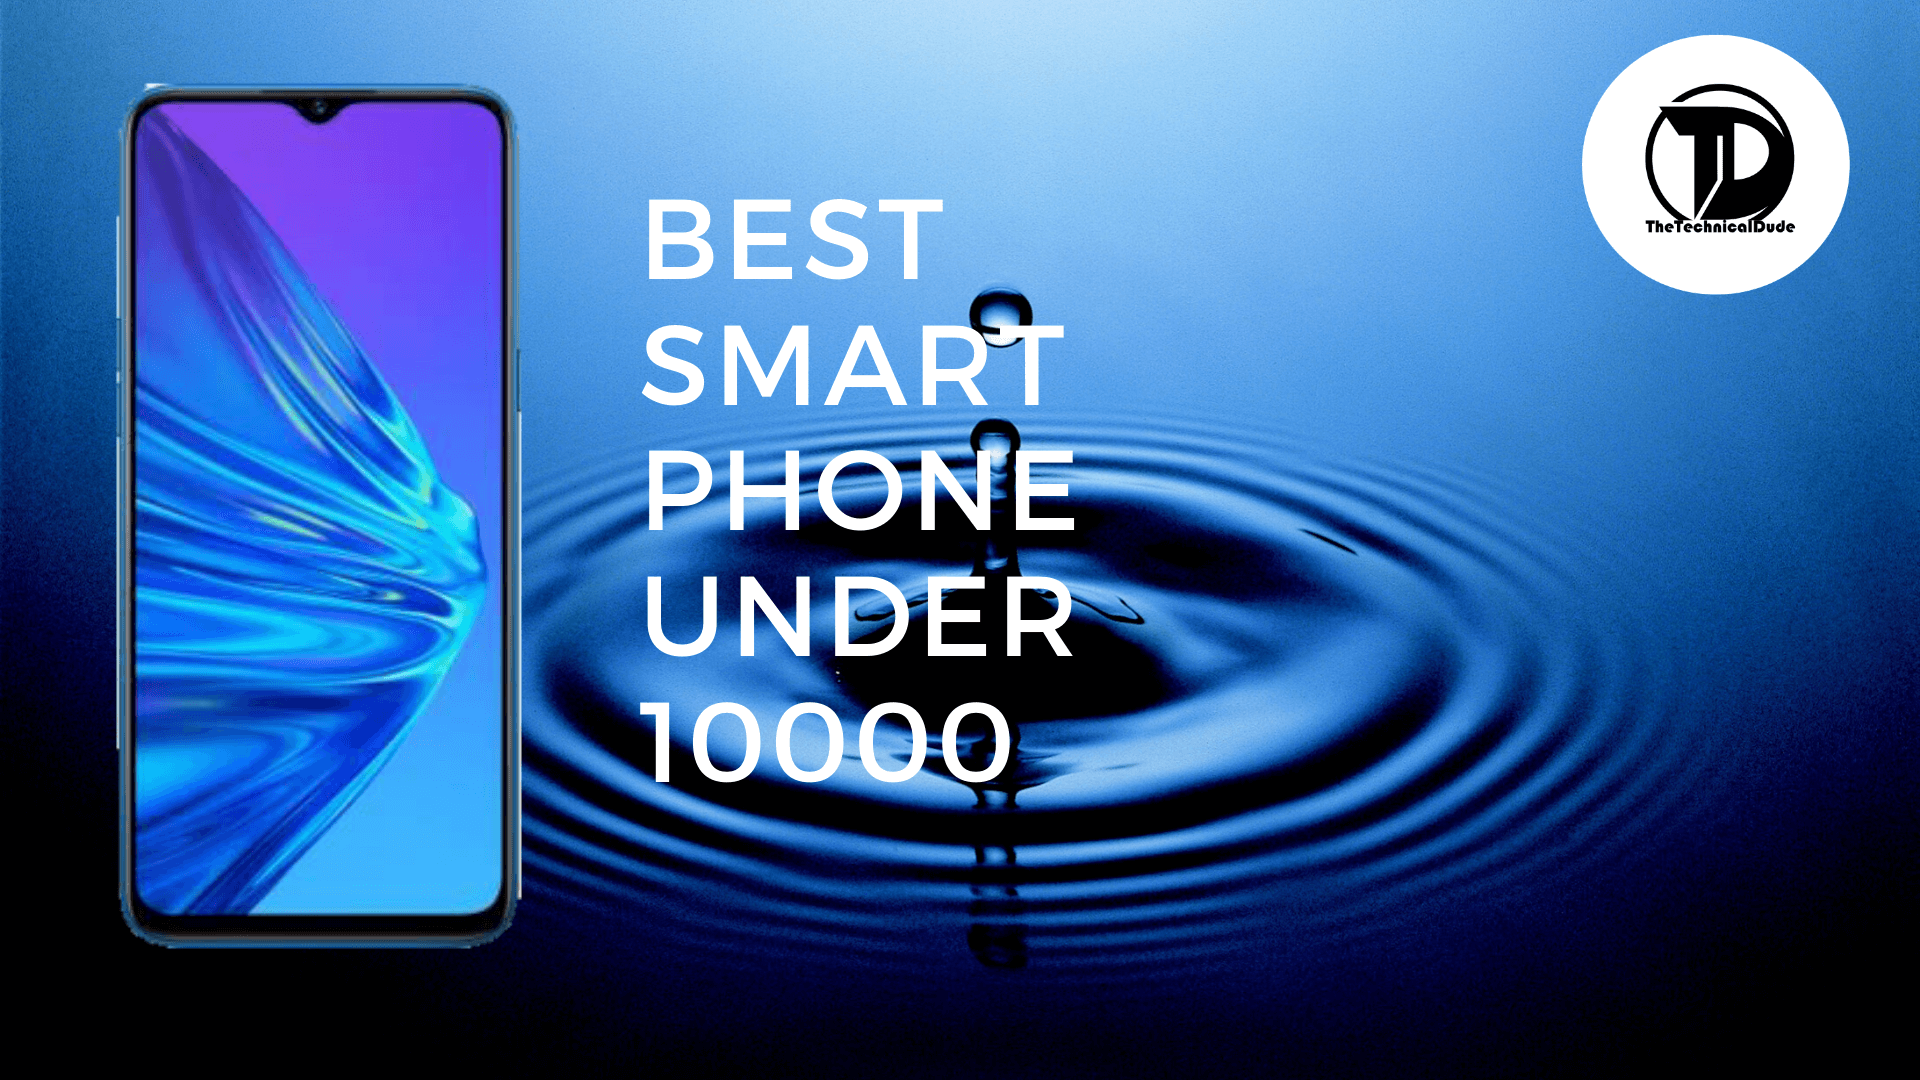 Best Mobile Phone Under 10000 In 2020